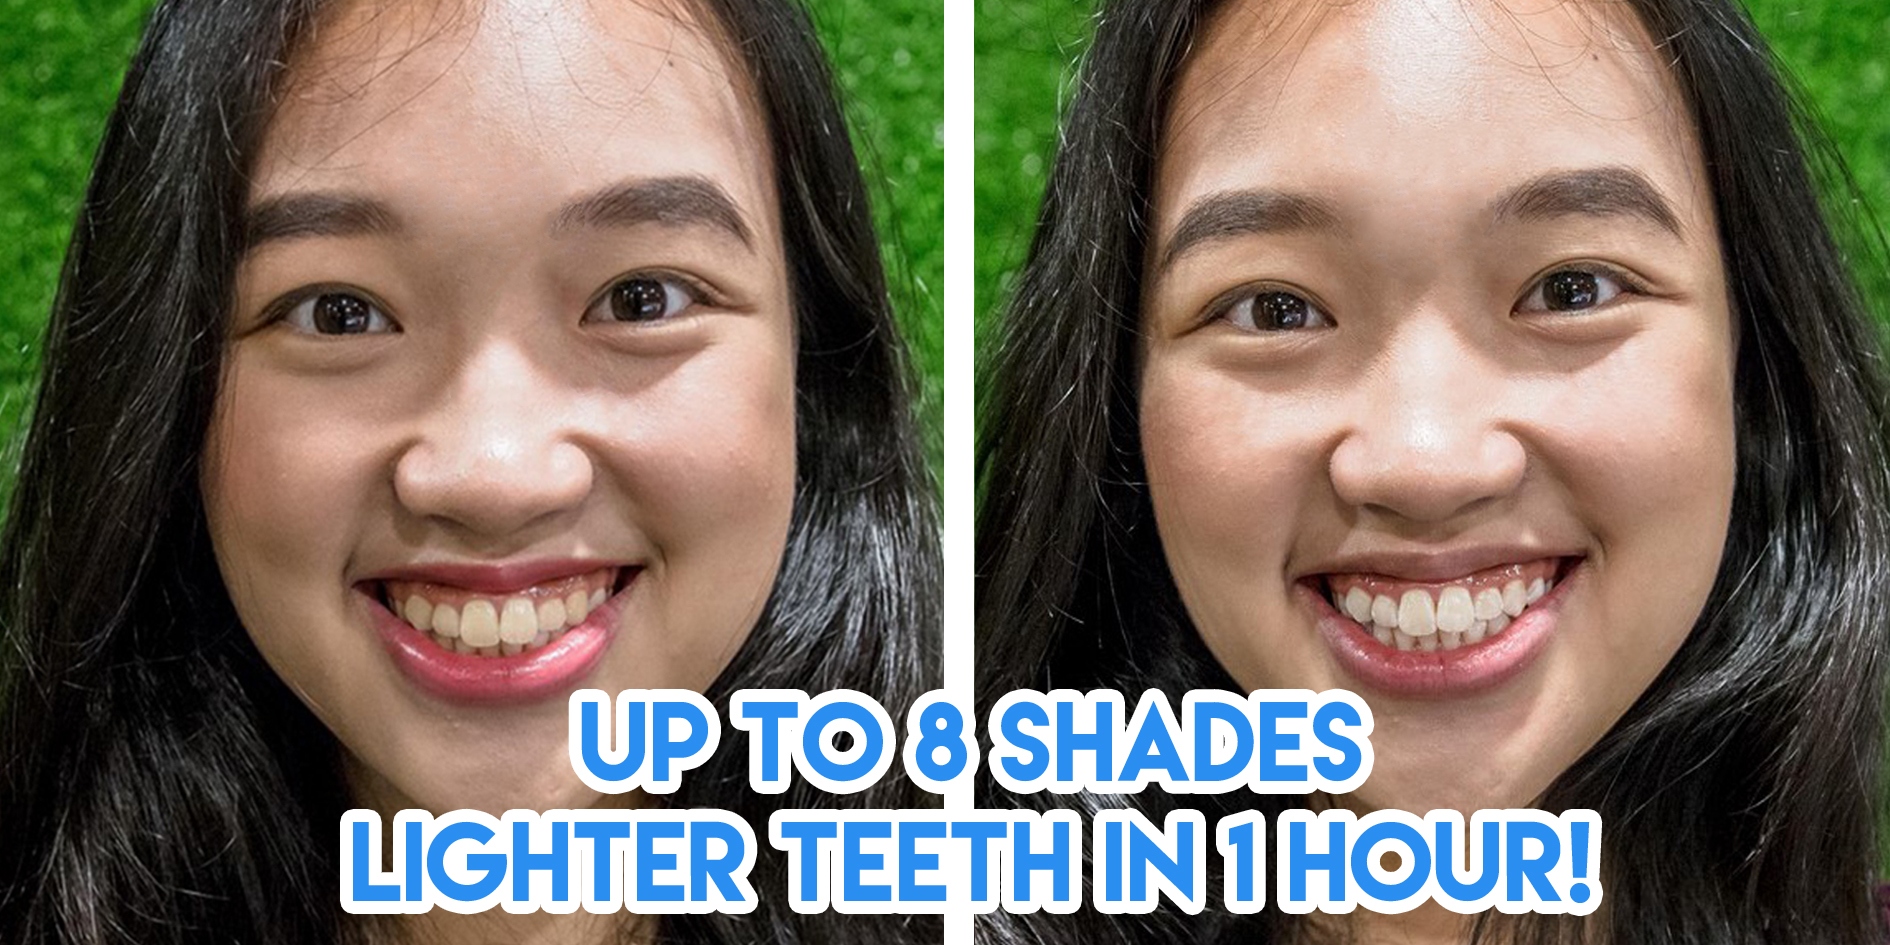 Mirage Aesthetic Teeth Whitening Before After